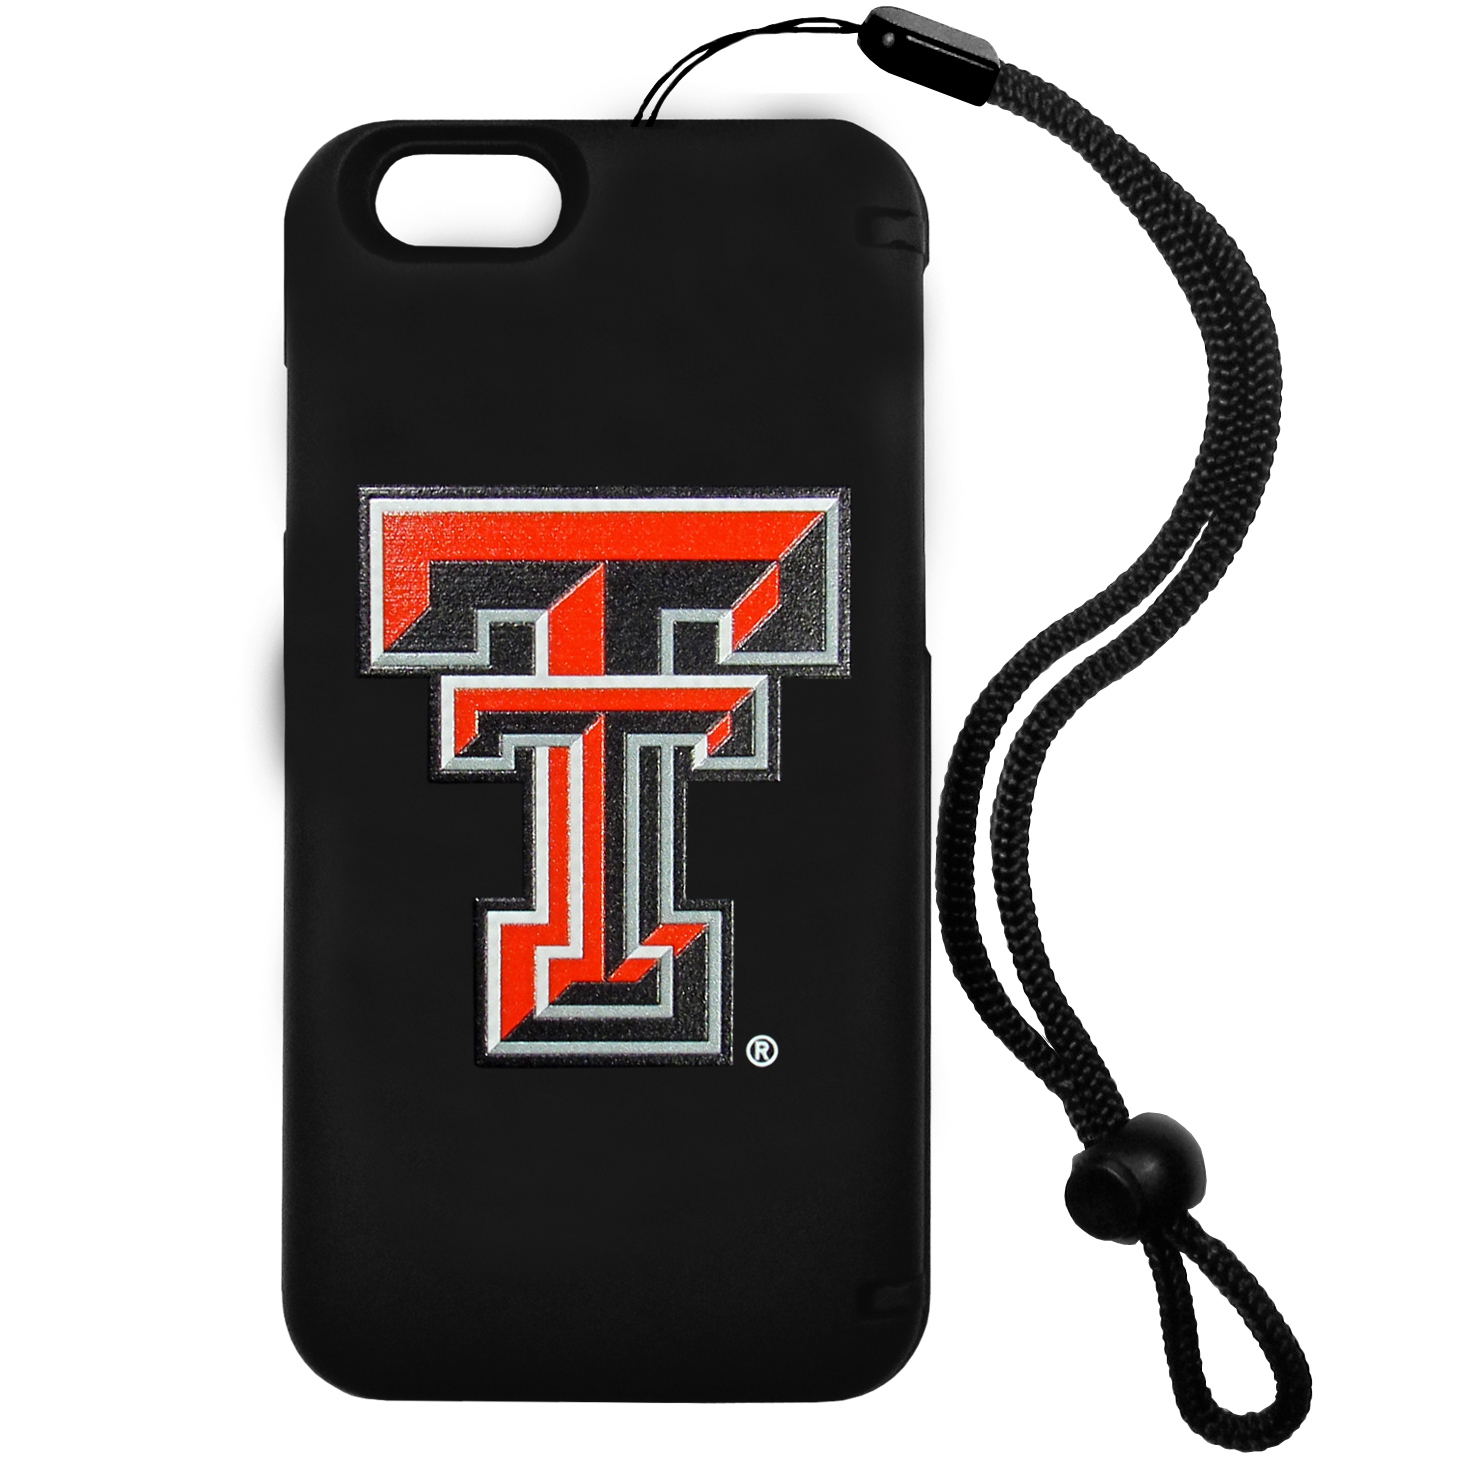 Texas Tech Raiders iPhone 6 Everything Case - This case really does have everything but the kitchen sink! The hidden compartment lets you keep your cards, money and tickets to the big game safe and secure and has a compact mirror so you can make sure your game face is ready to go. It also comes with a kickstand to make chatting and watching videos a breeze. The wrist strap allows you to travel with ease with your everything case. If that's not enough, it also comes with the Texas Tech Raiders logo printed in expert detail on the front.